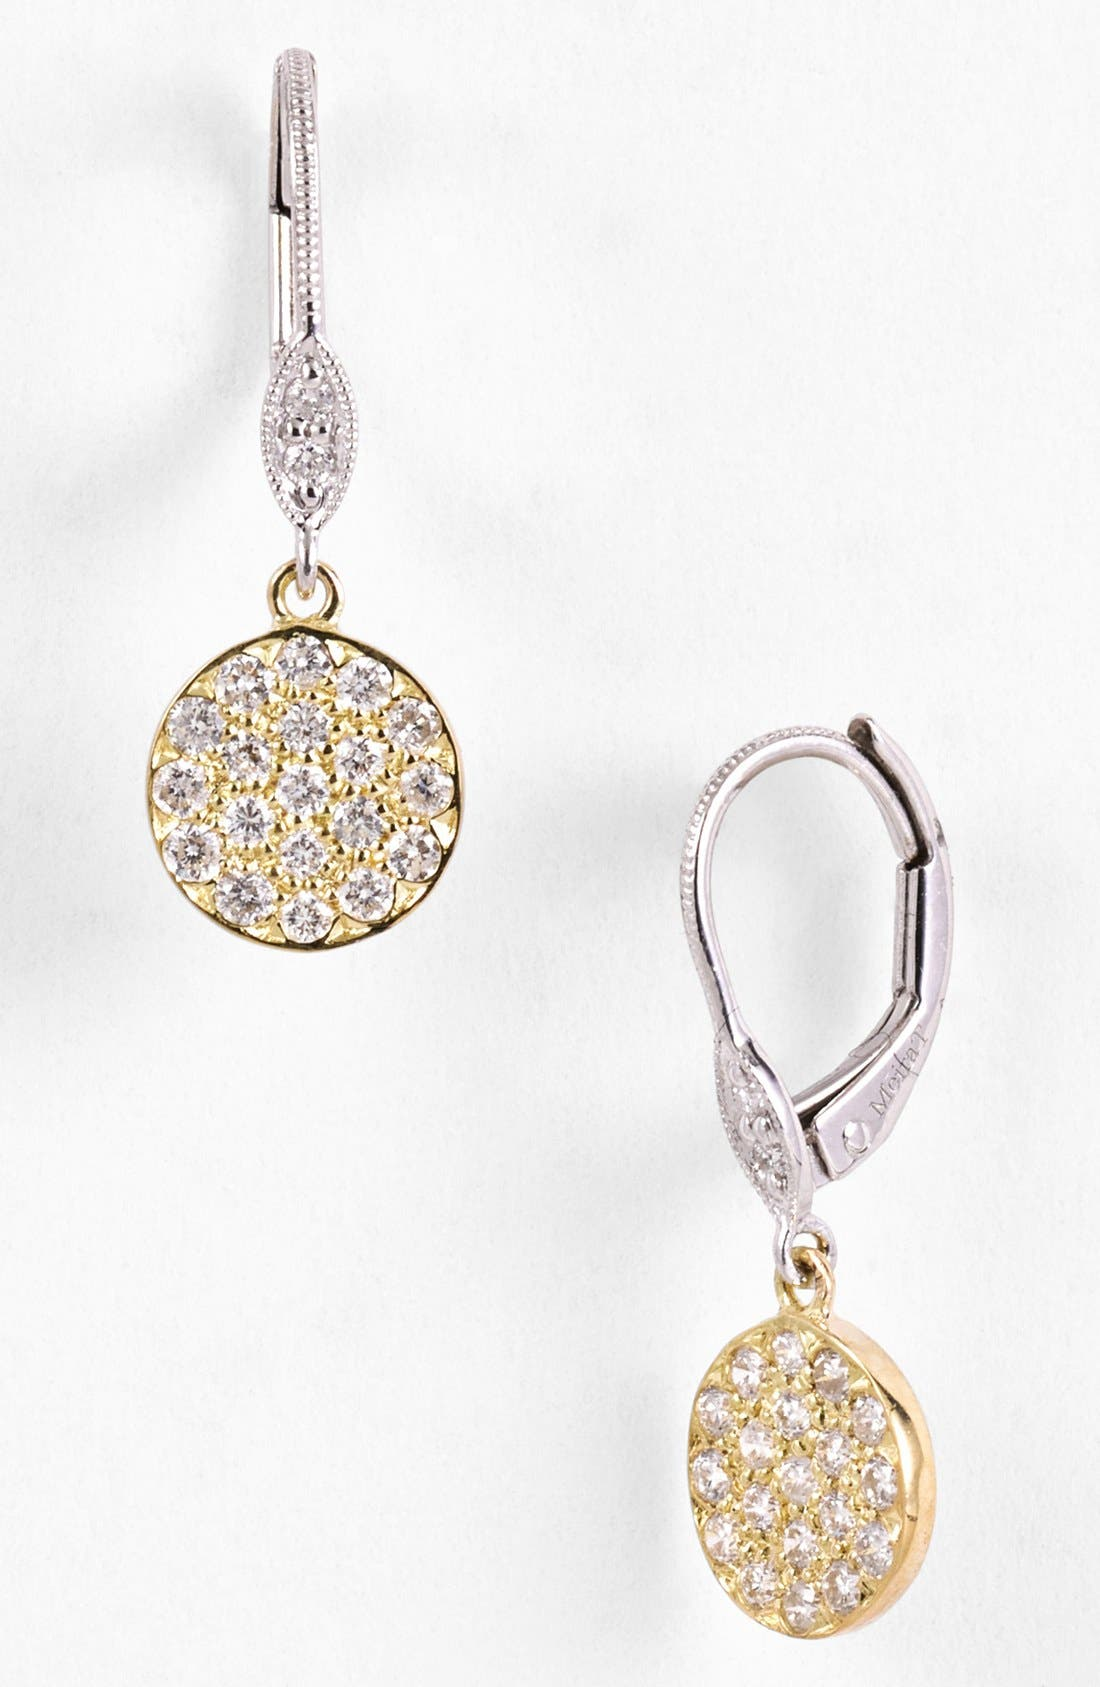 MeiraT 'Dazzling' Diamond Disc Drop Earrings,                             Main thumbnail 1, color,                             Yellow Gold